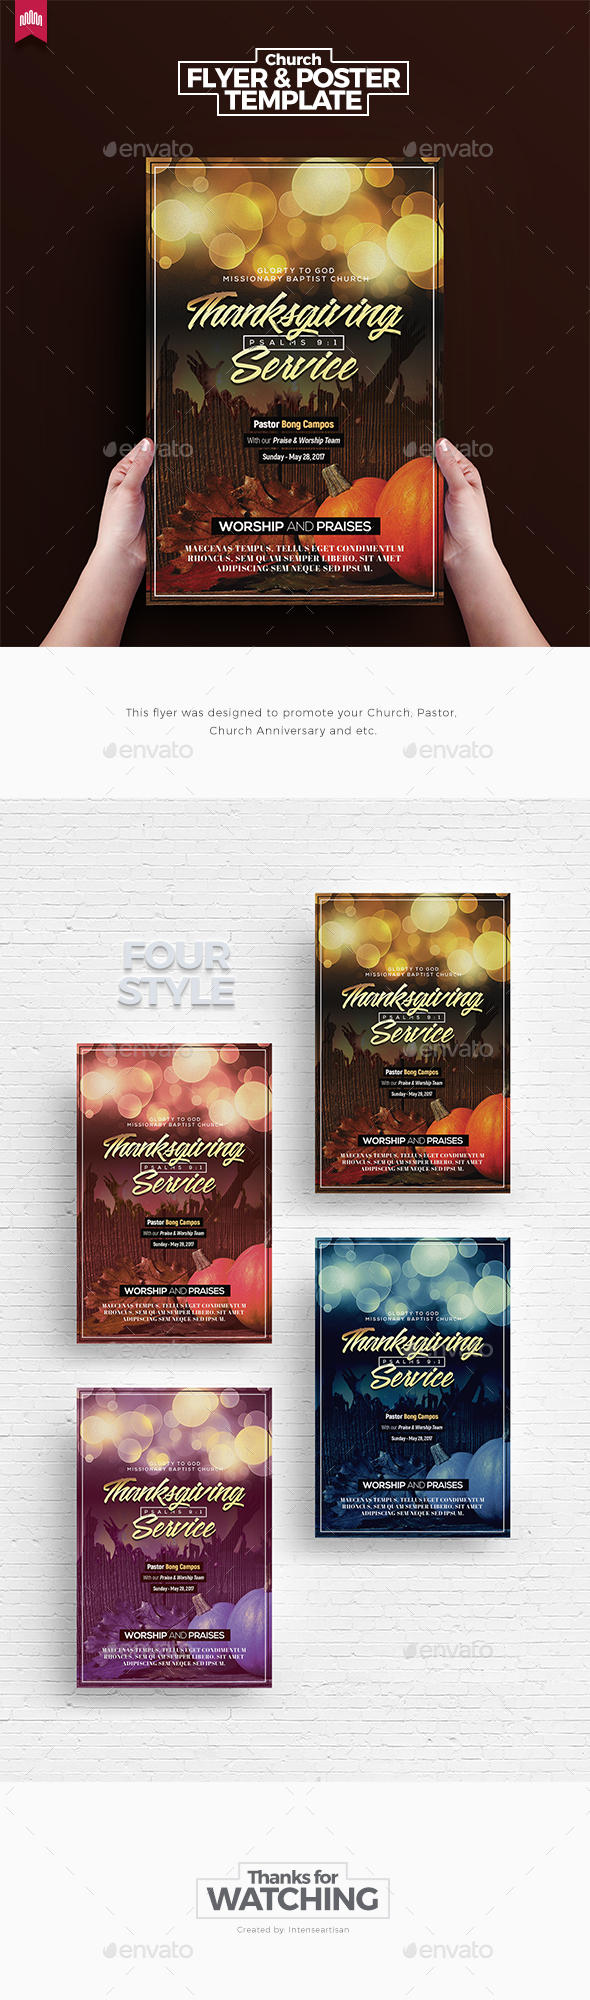 thanksgiving service church flyer template by intenseartisan graphicriver. Black Bedroom Furniture Sets. Home Design Ideas